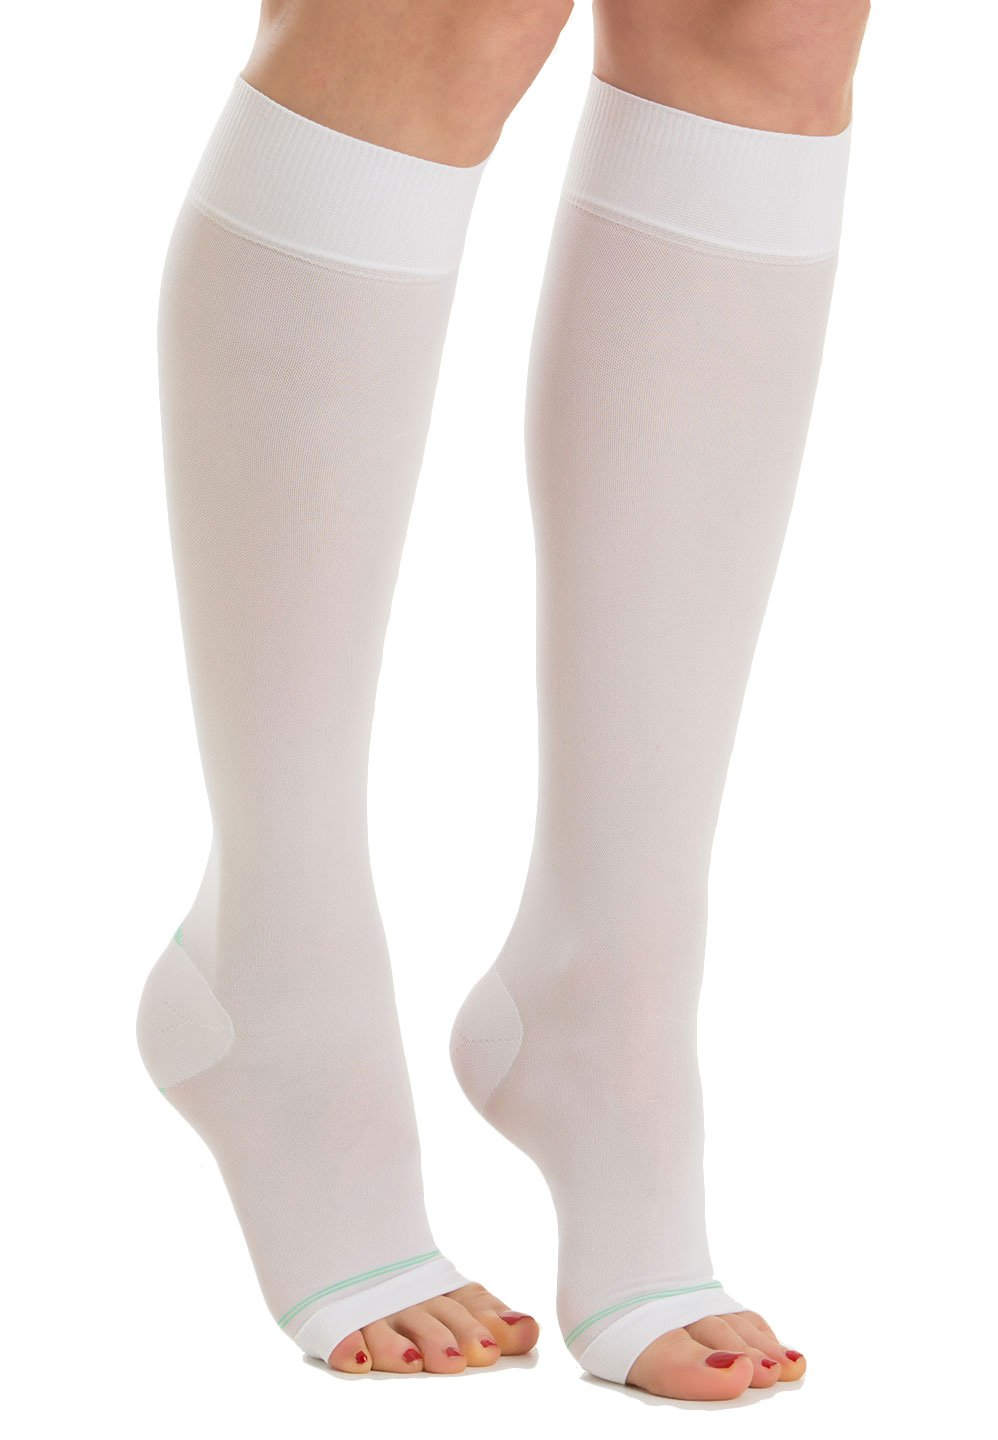 RelaxSan Antiembolism M0350A Open-toe anti-embolism knee high socks - 18 mmHg 100% Made in Italy